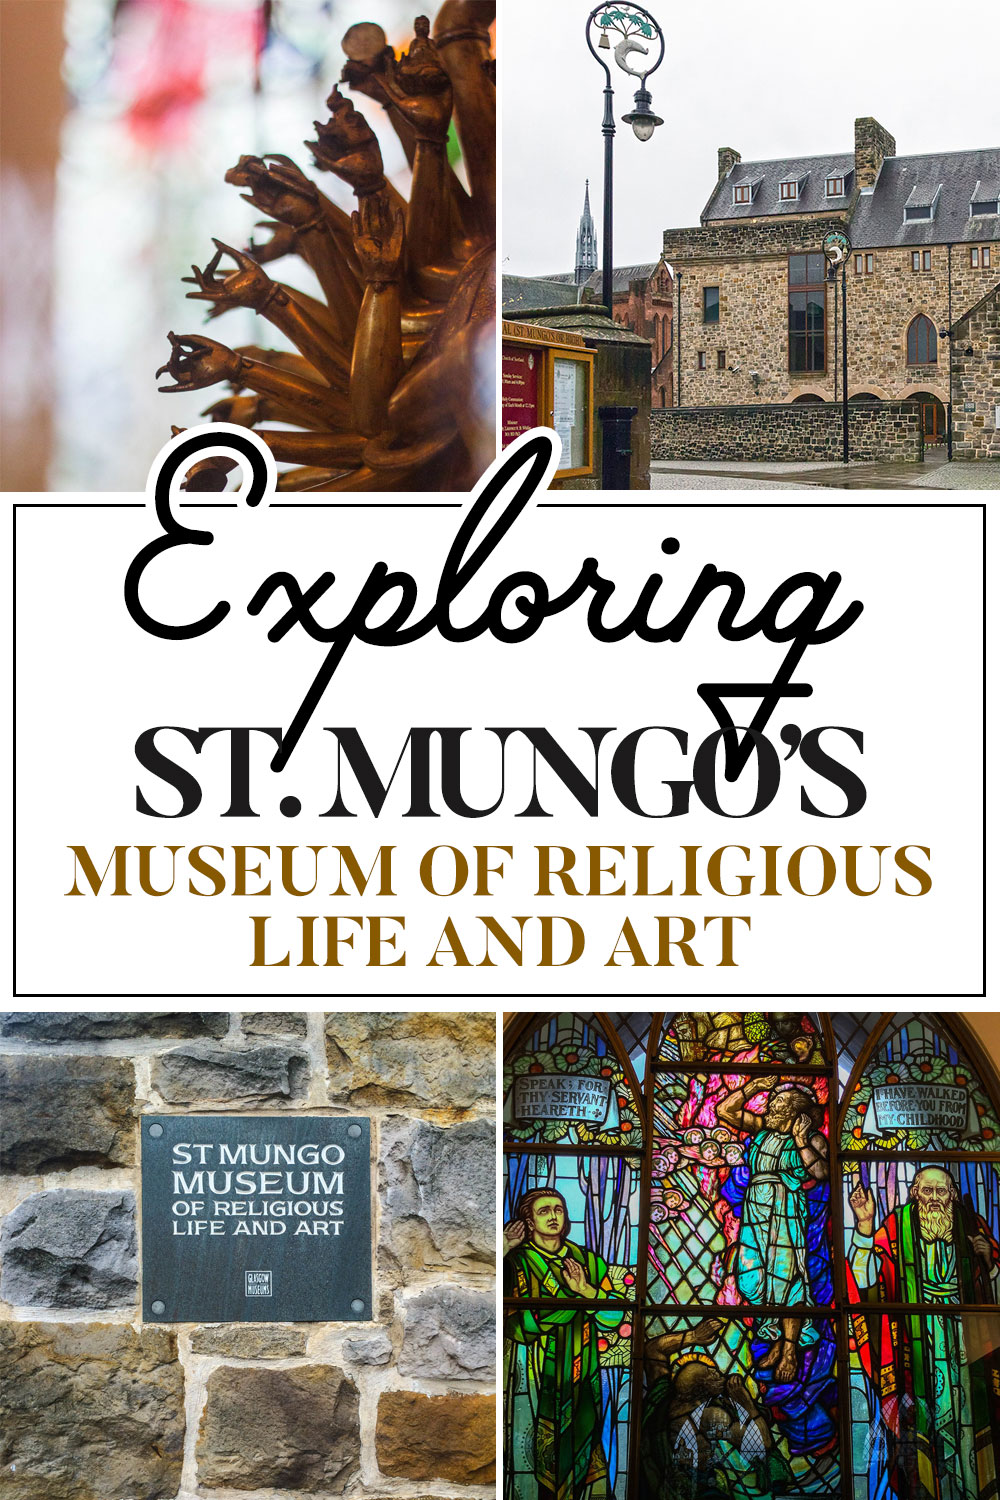 Exploring St. Mungo Museum of Religious Life and Art